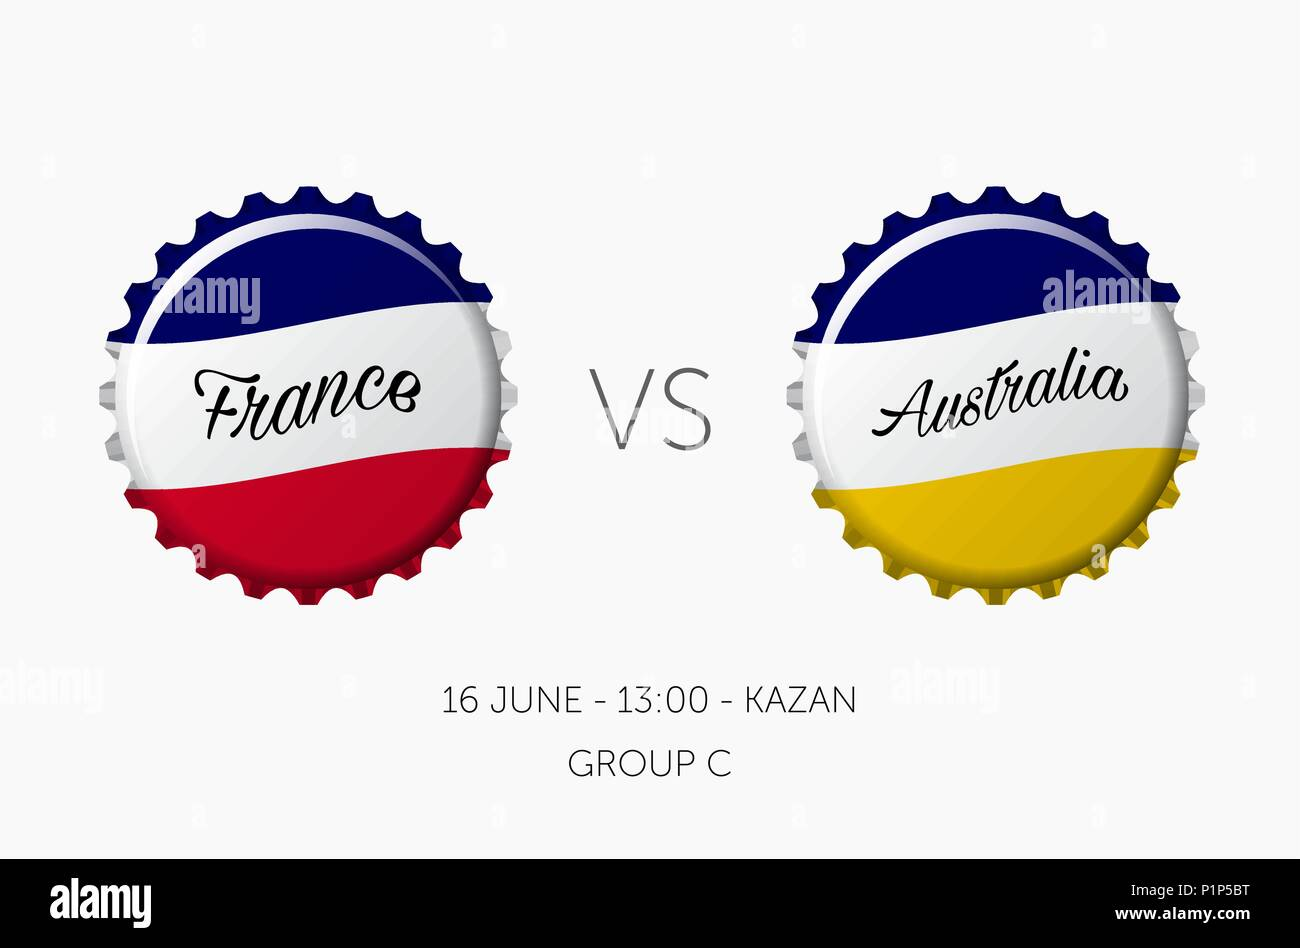 Soccer championship - France VS Australia - 16 June - Stock Vector